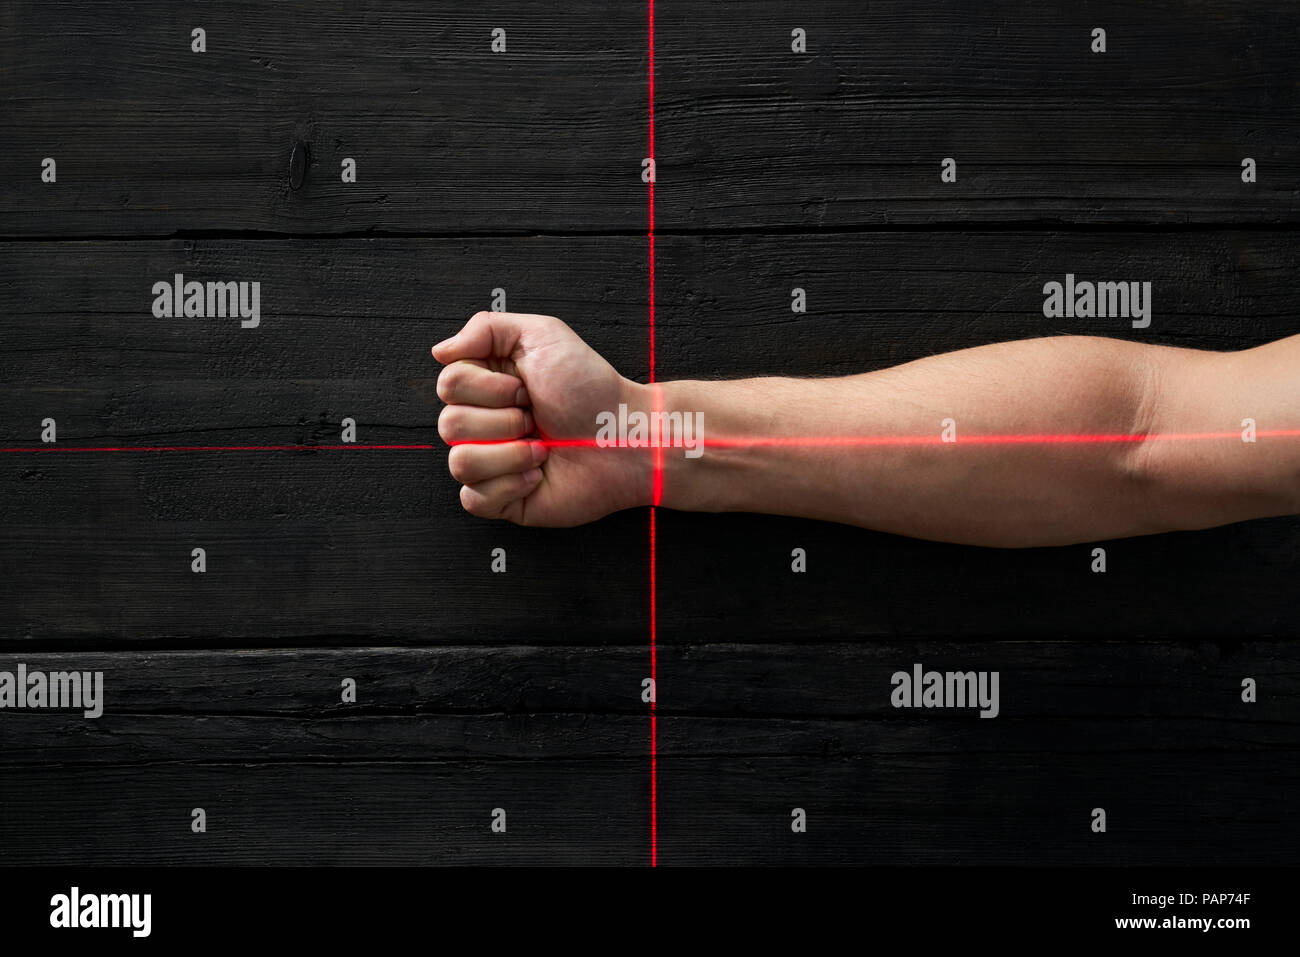 Human hand getting scanned by red light rays - Stock Image